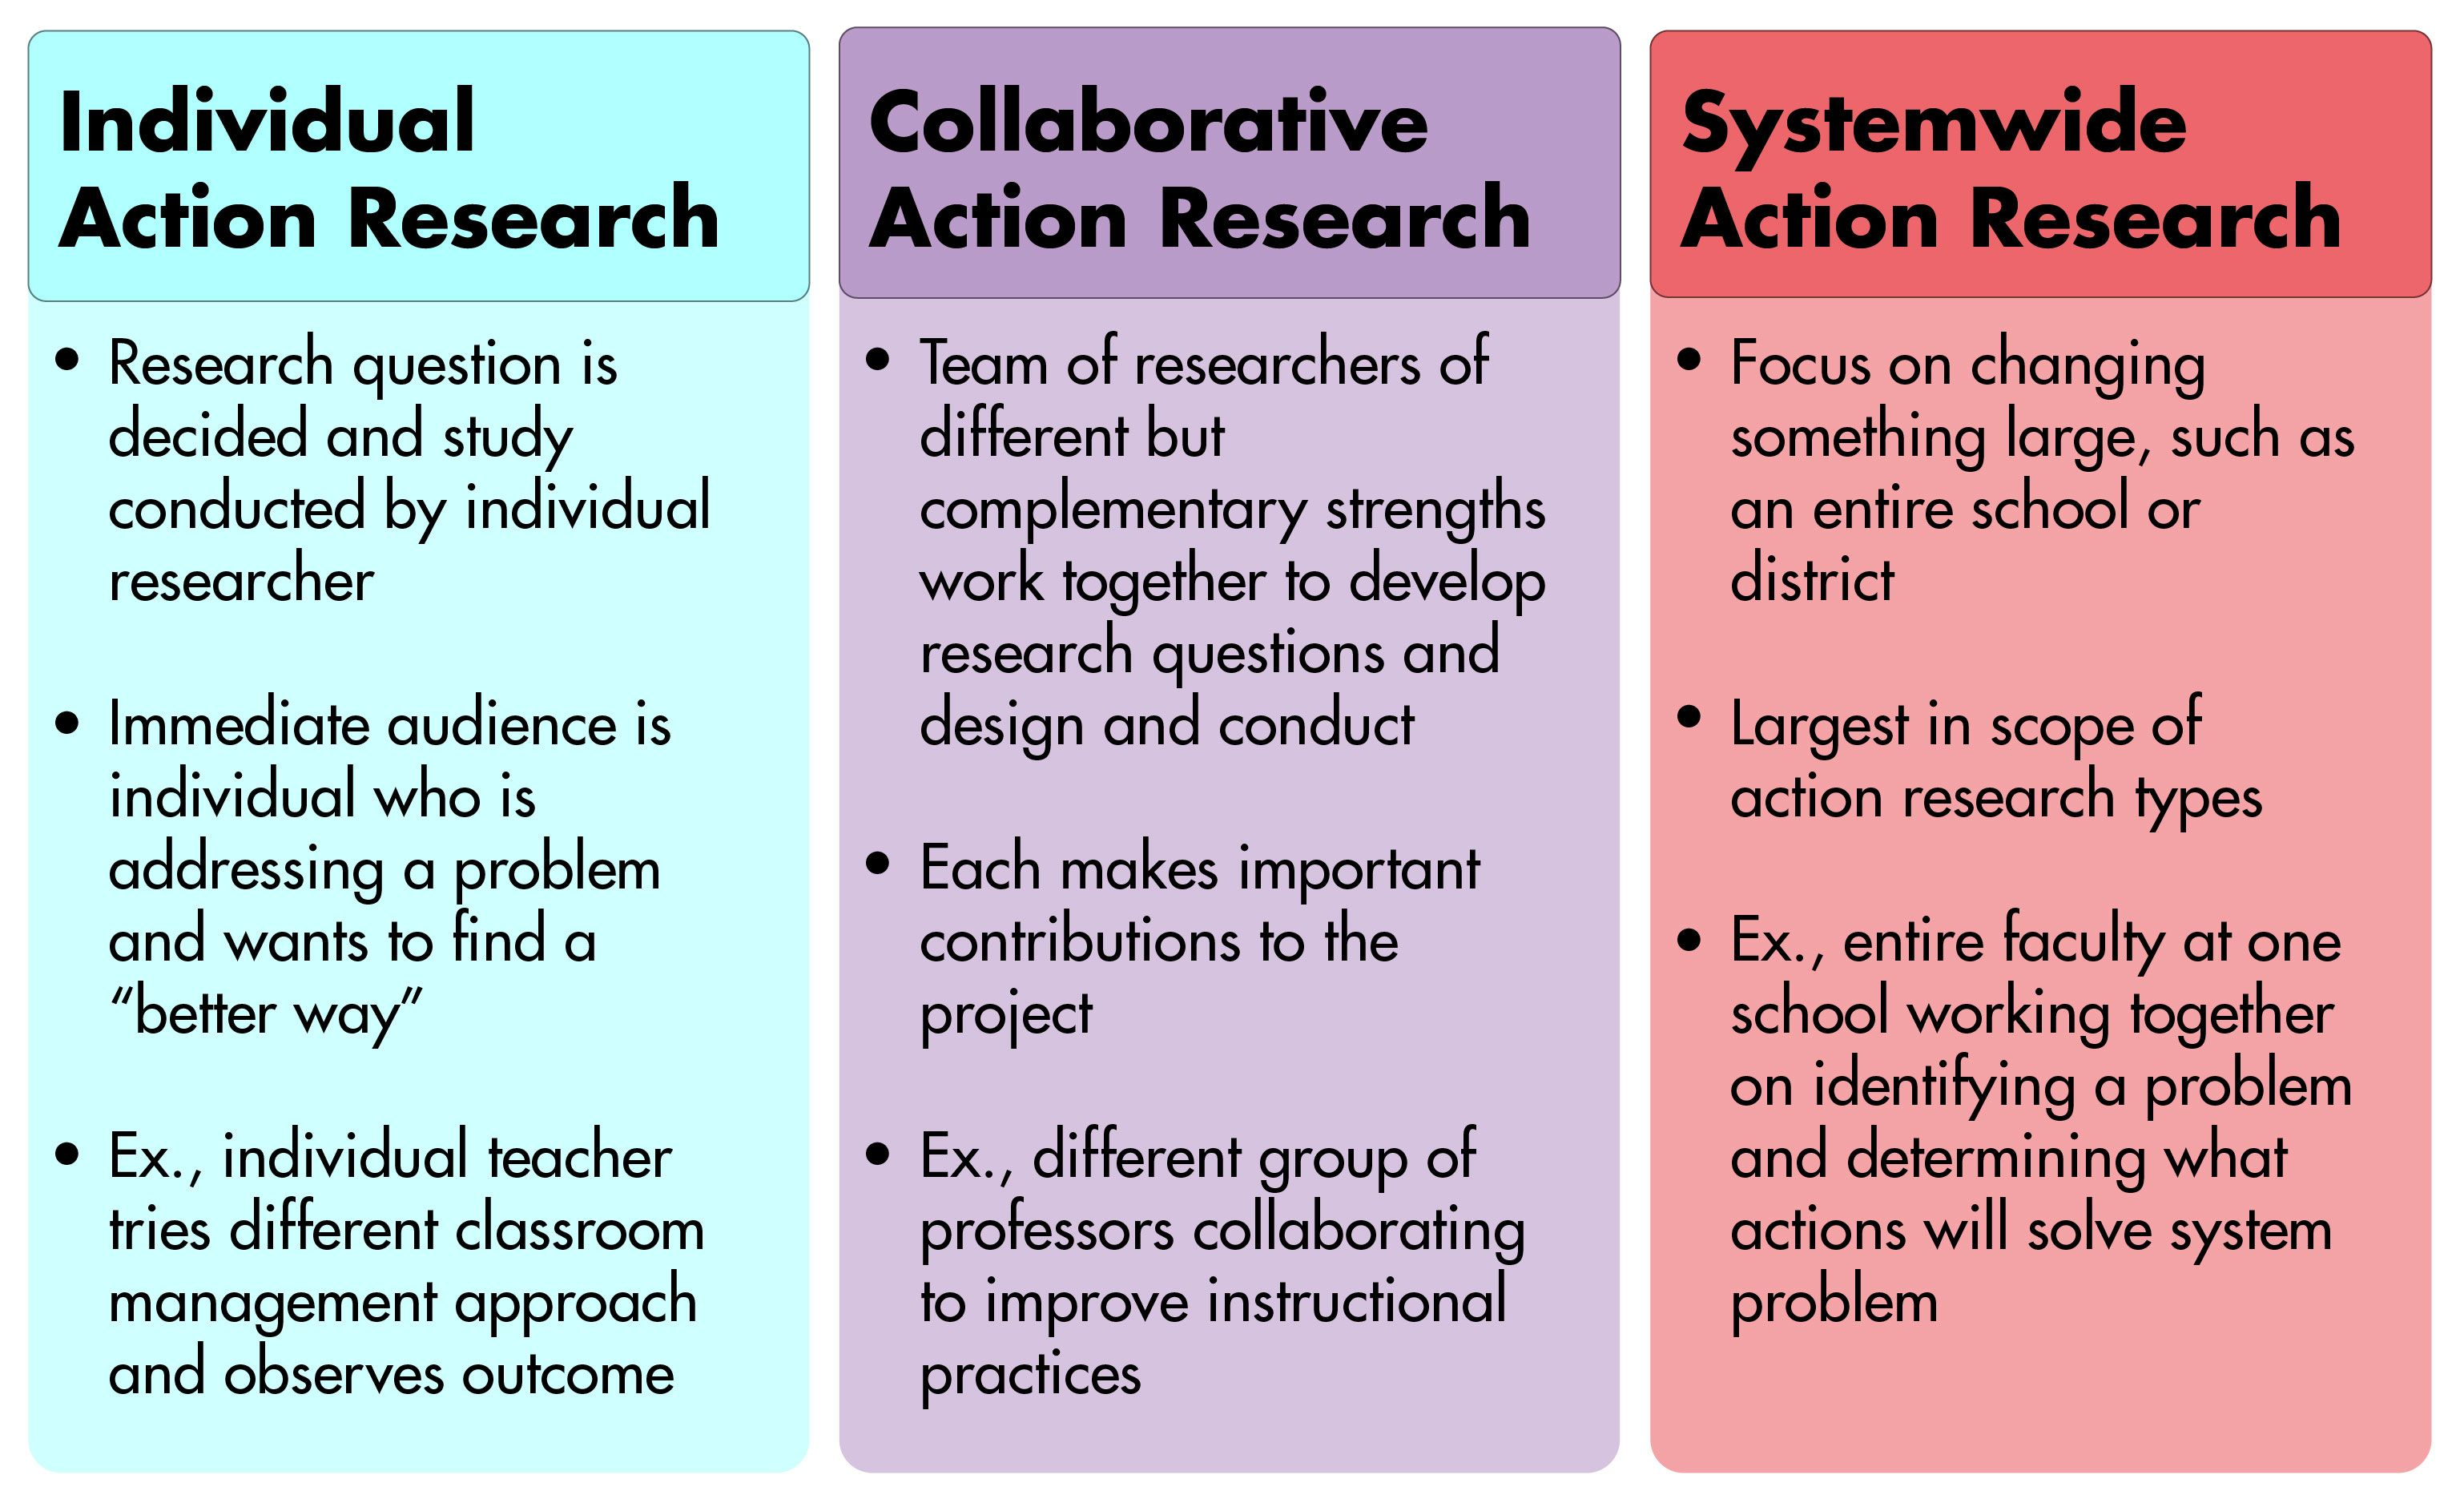 On The Left Is Individual Action Research Described As Research